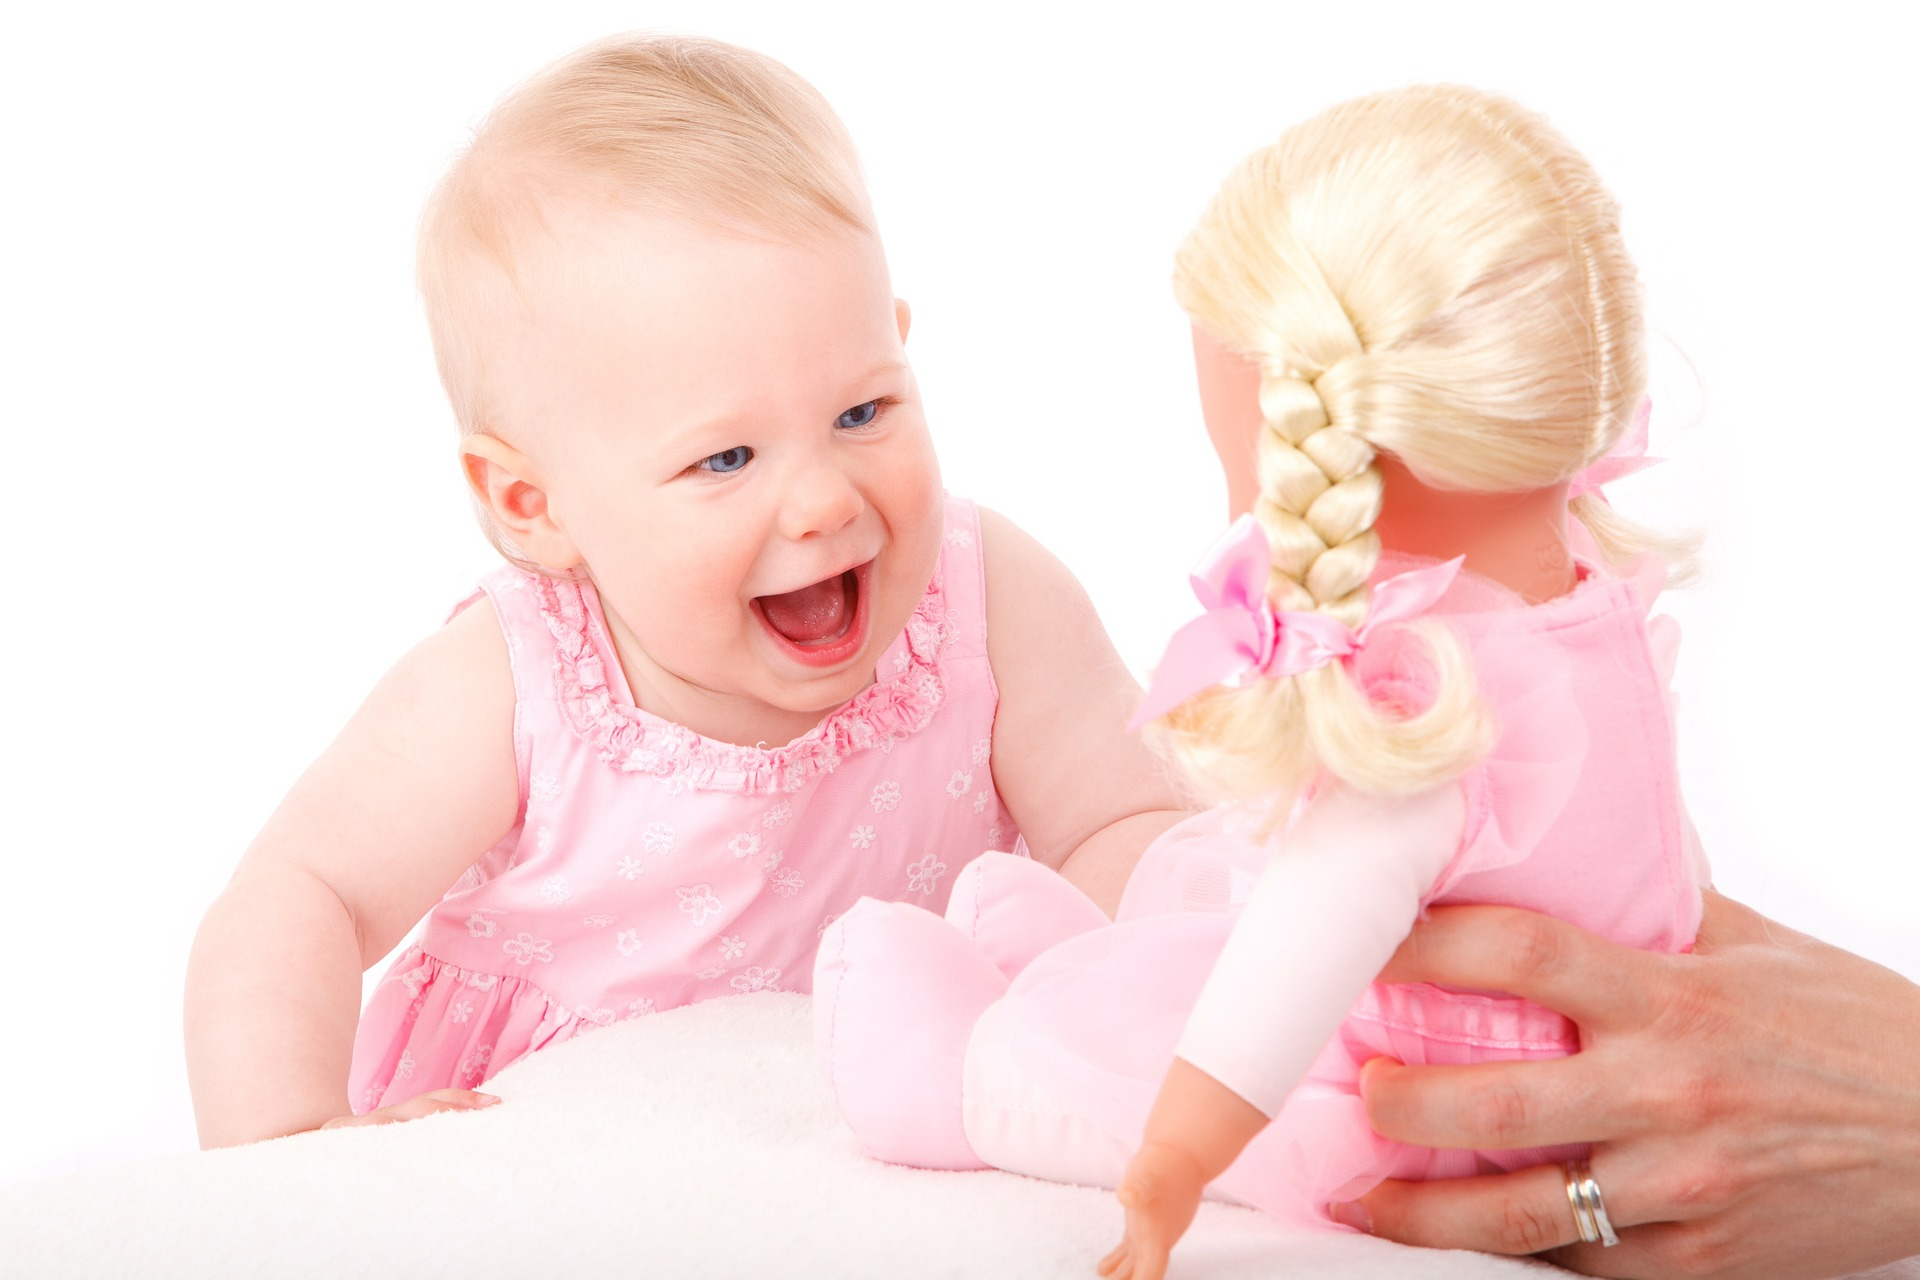 Baby respond to voice and playing with doll